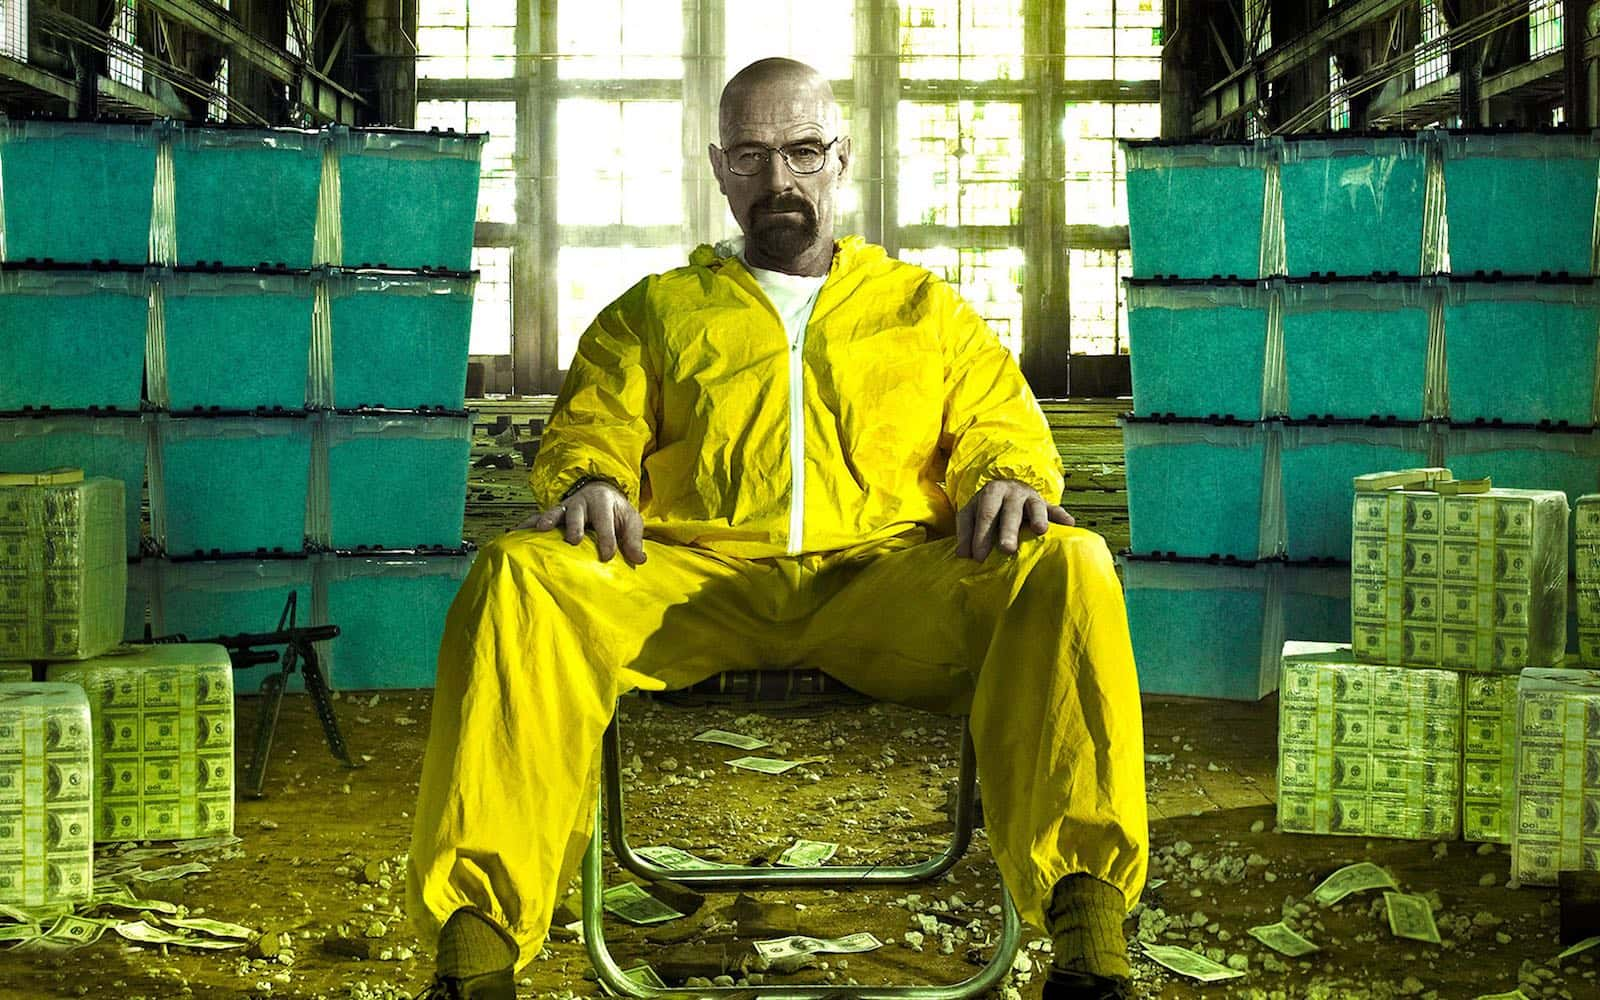 How to Pitch a TV Show - Breaking Bad Walter